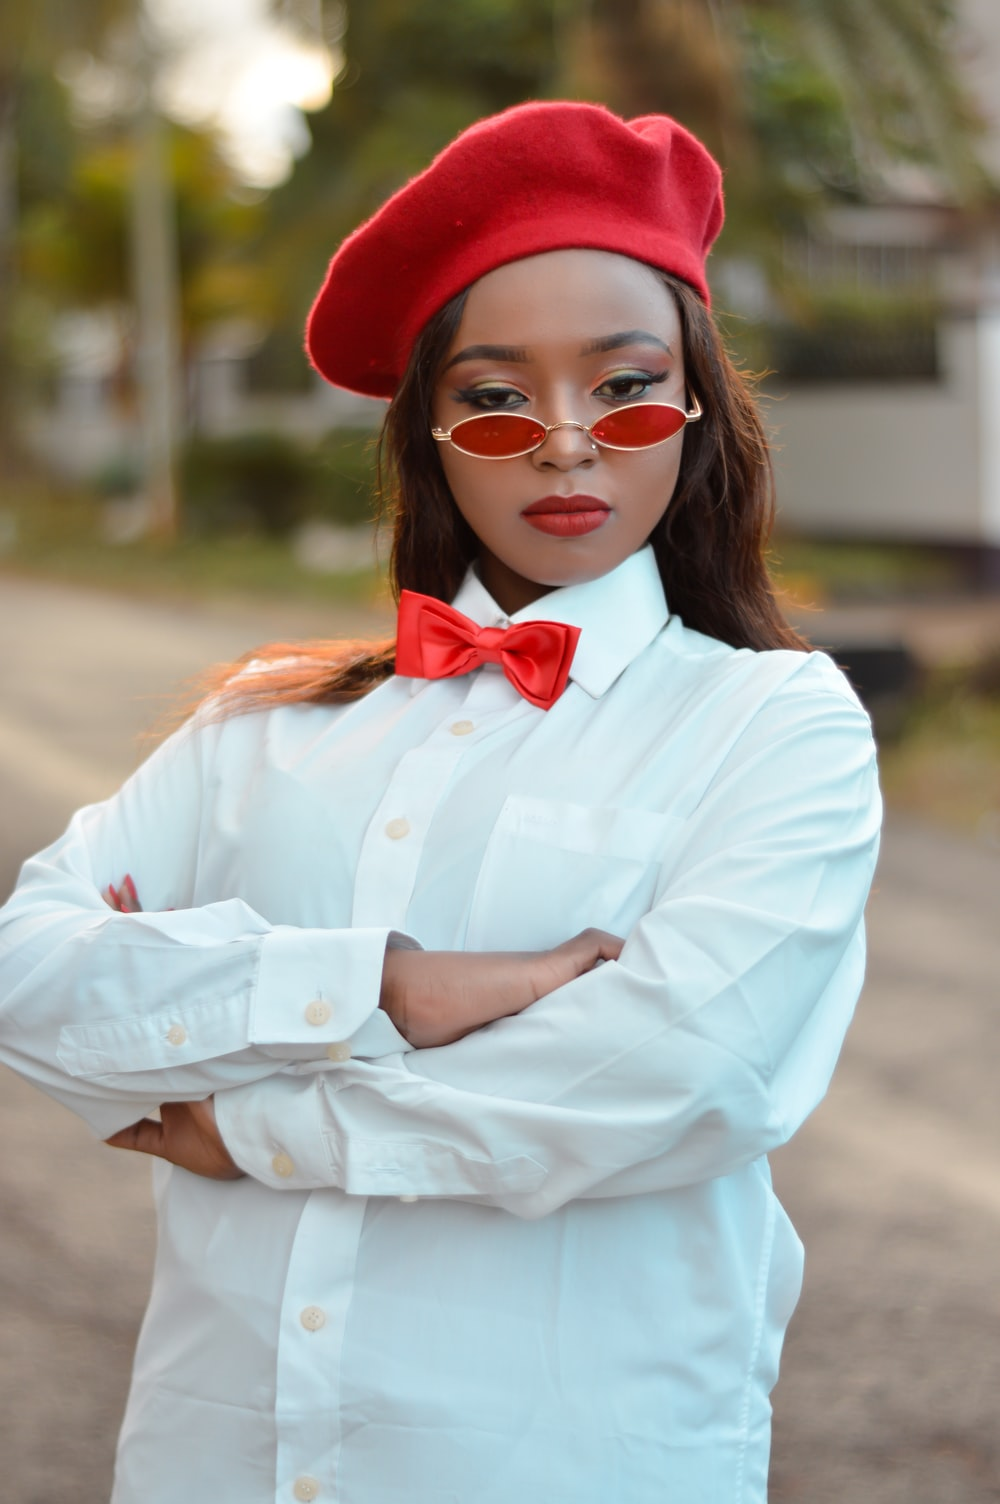 woman wearing white dress shirt and red cap